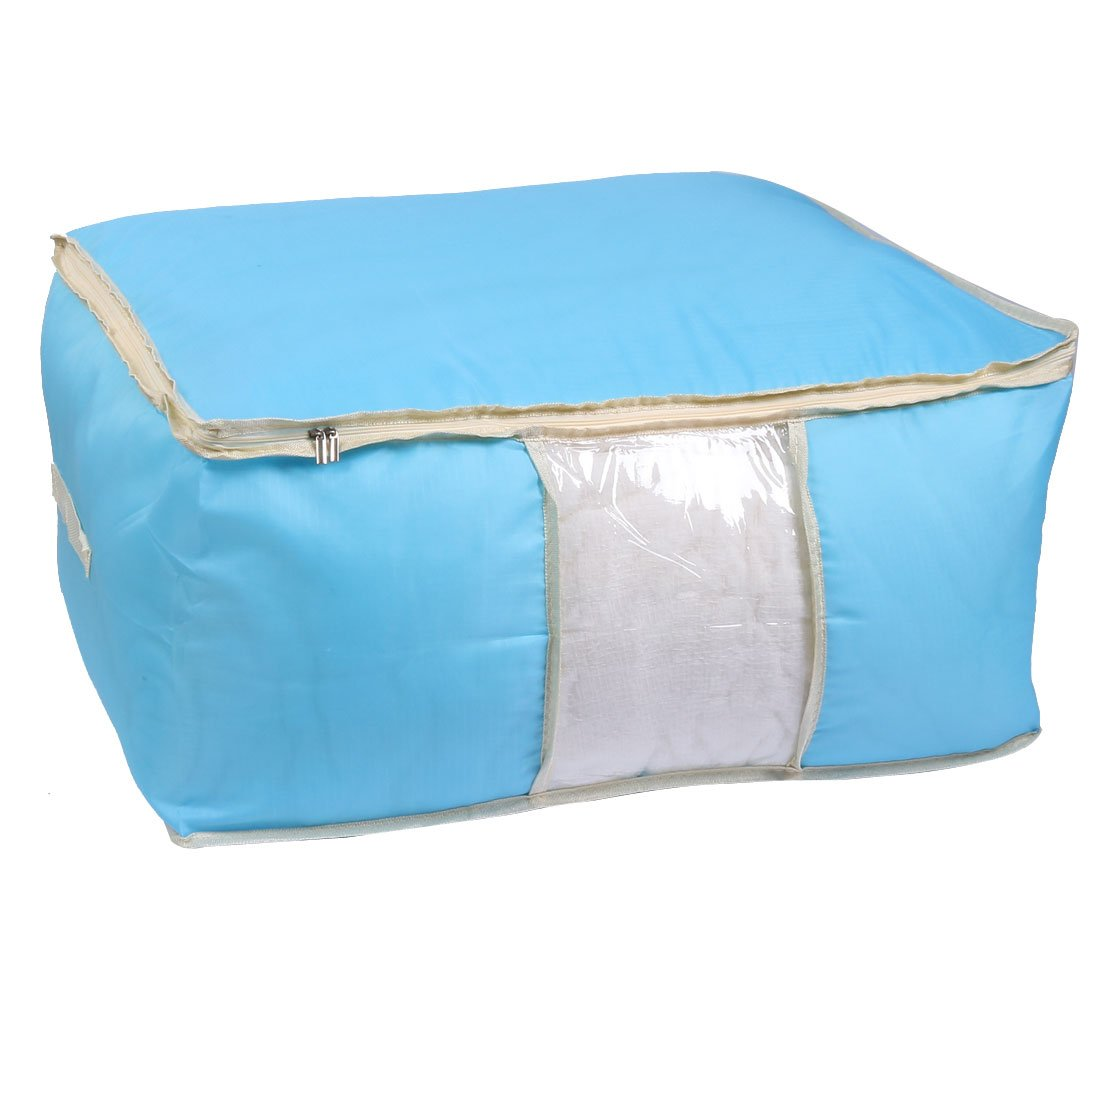 uxcell Clothes Coats Bed Sheets Quilt Duvet Storage Bag Holder Container Blue a16073000ux0318